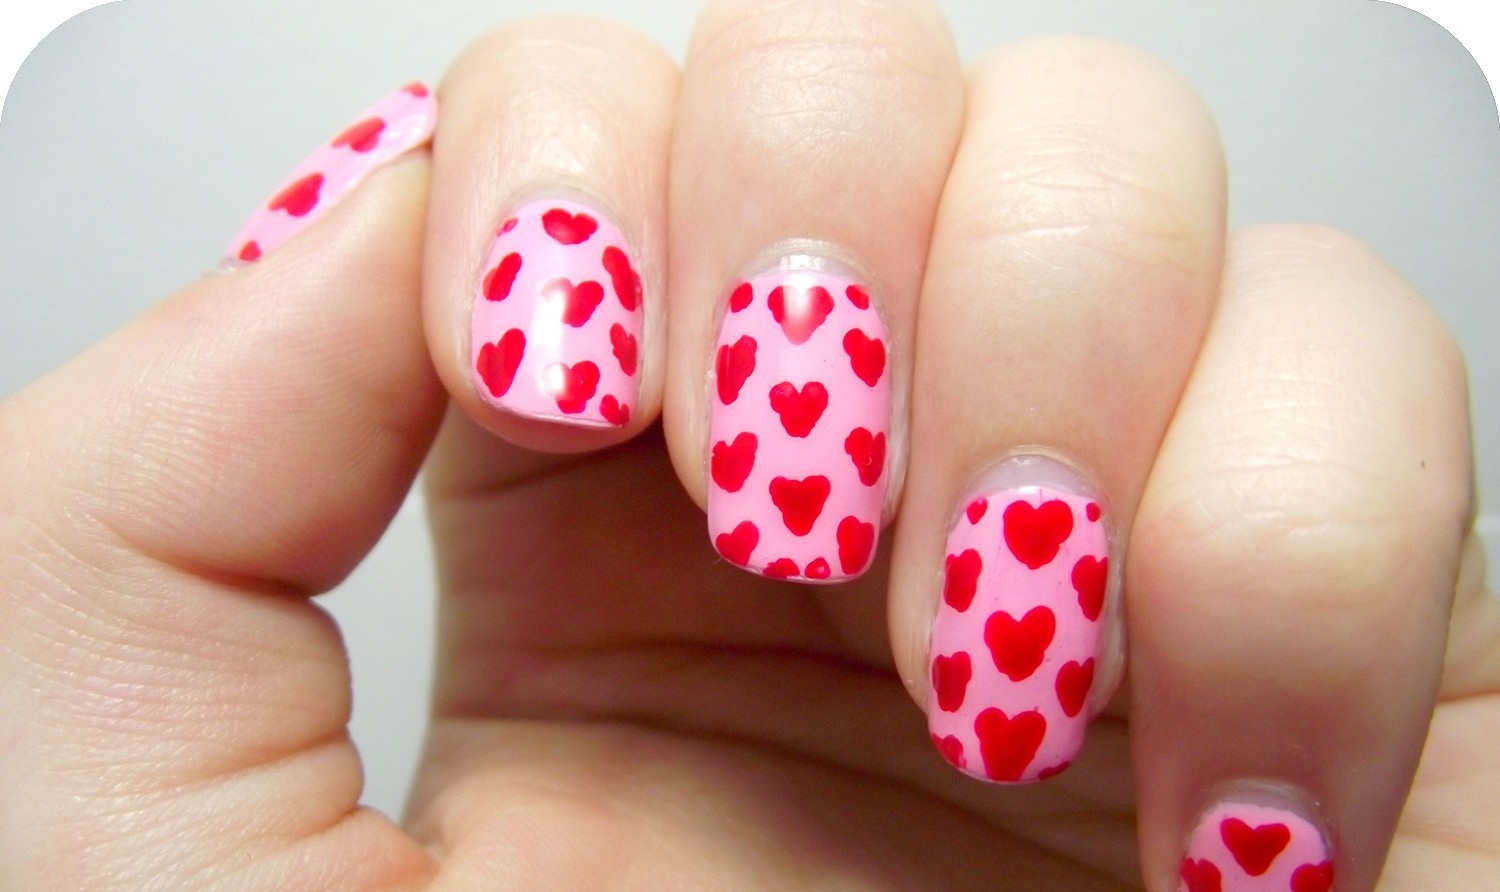 Nail Art Heart Designs | Fashionate Trends